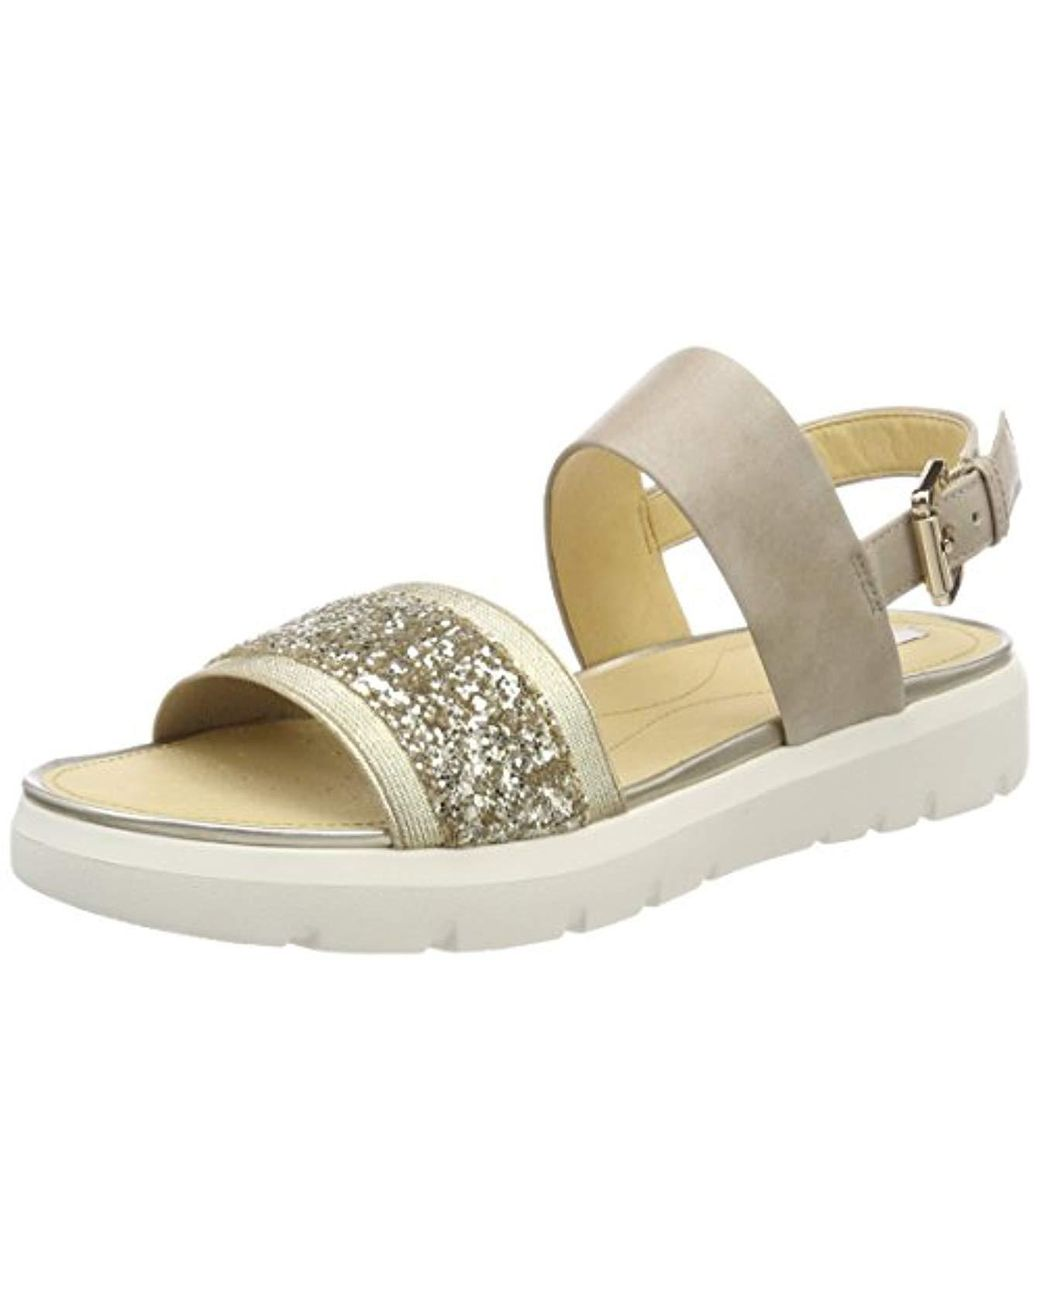 1520f8c97e70 Geox D Amalitha G Open Toe Sandals in Natural - Lyst